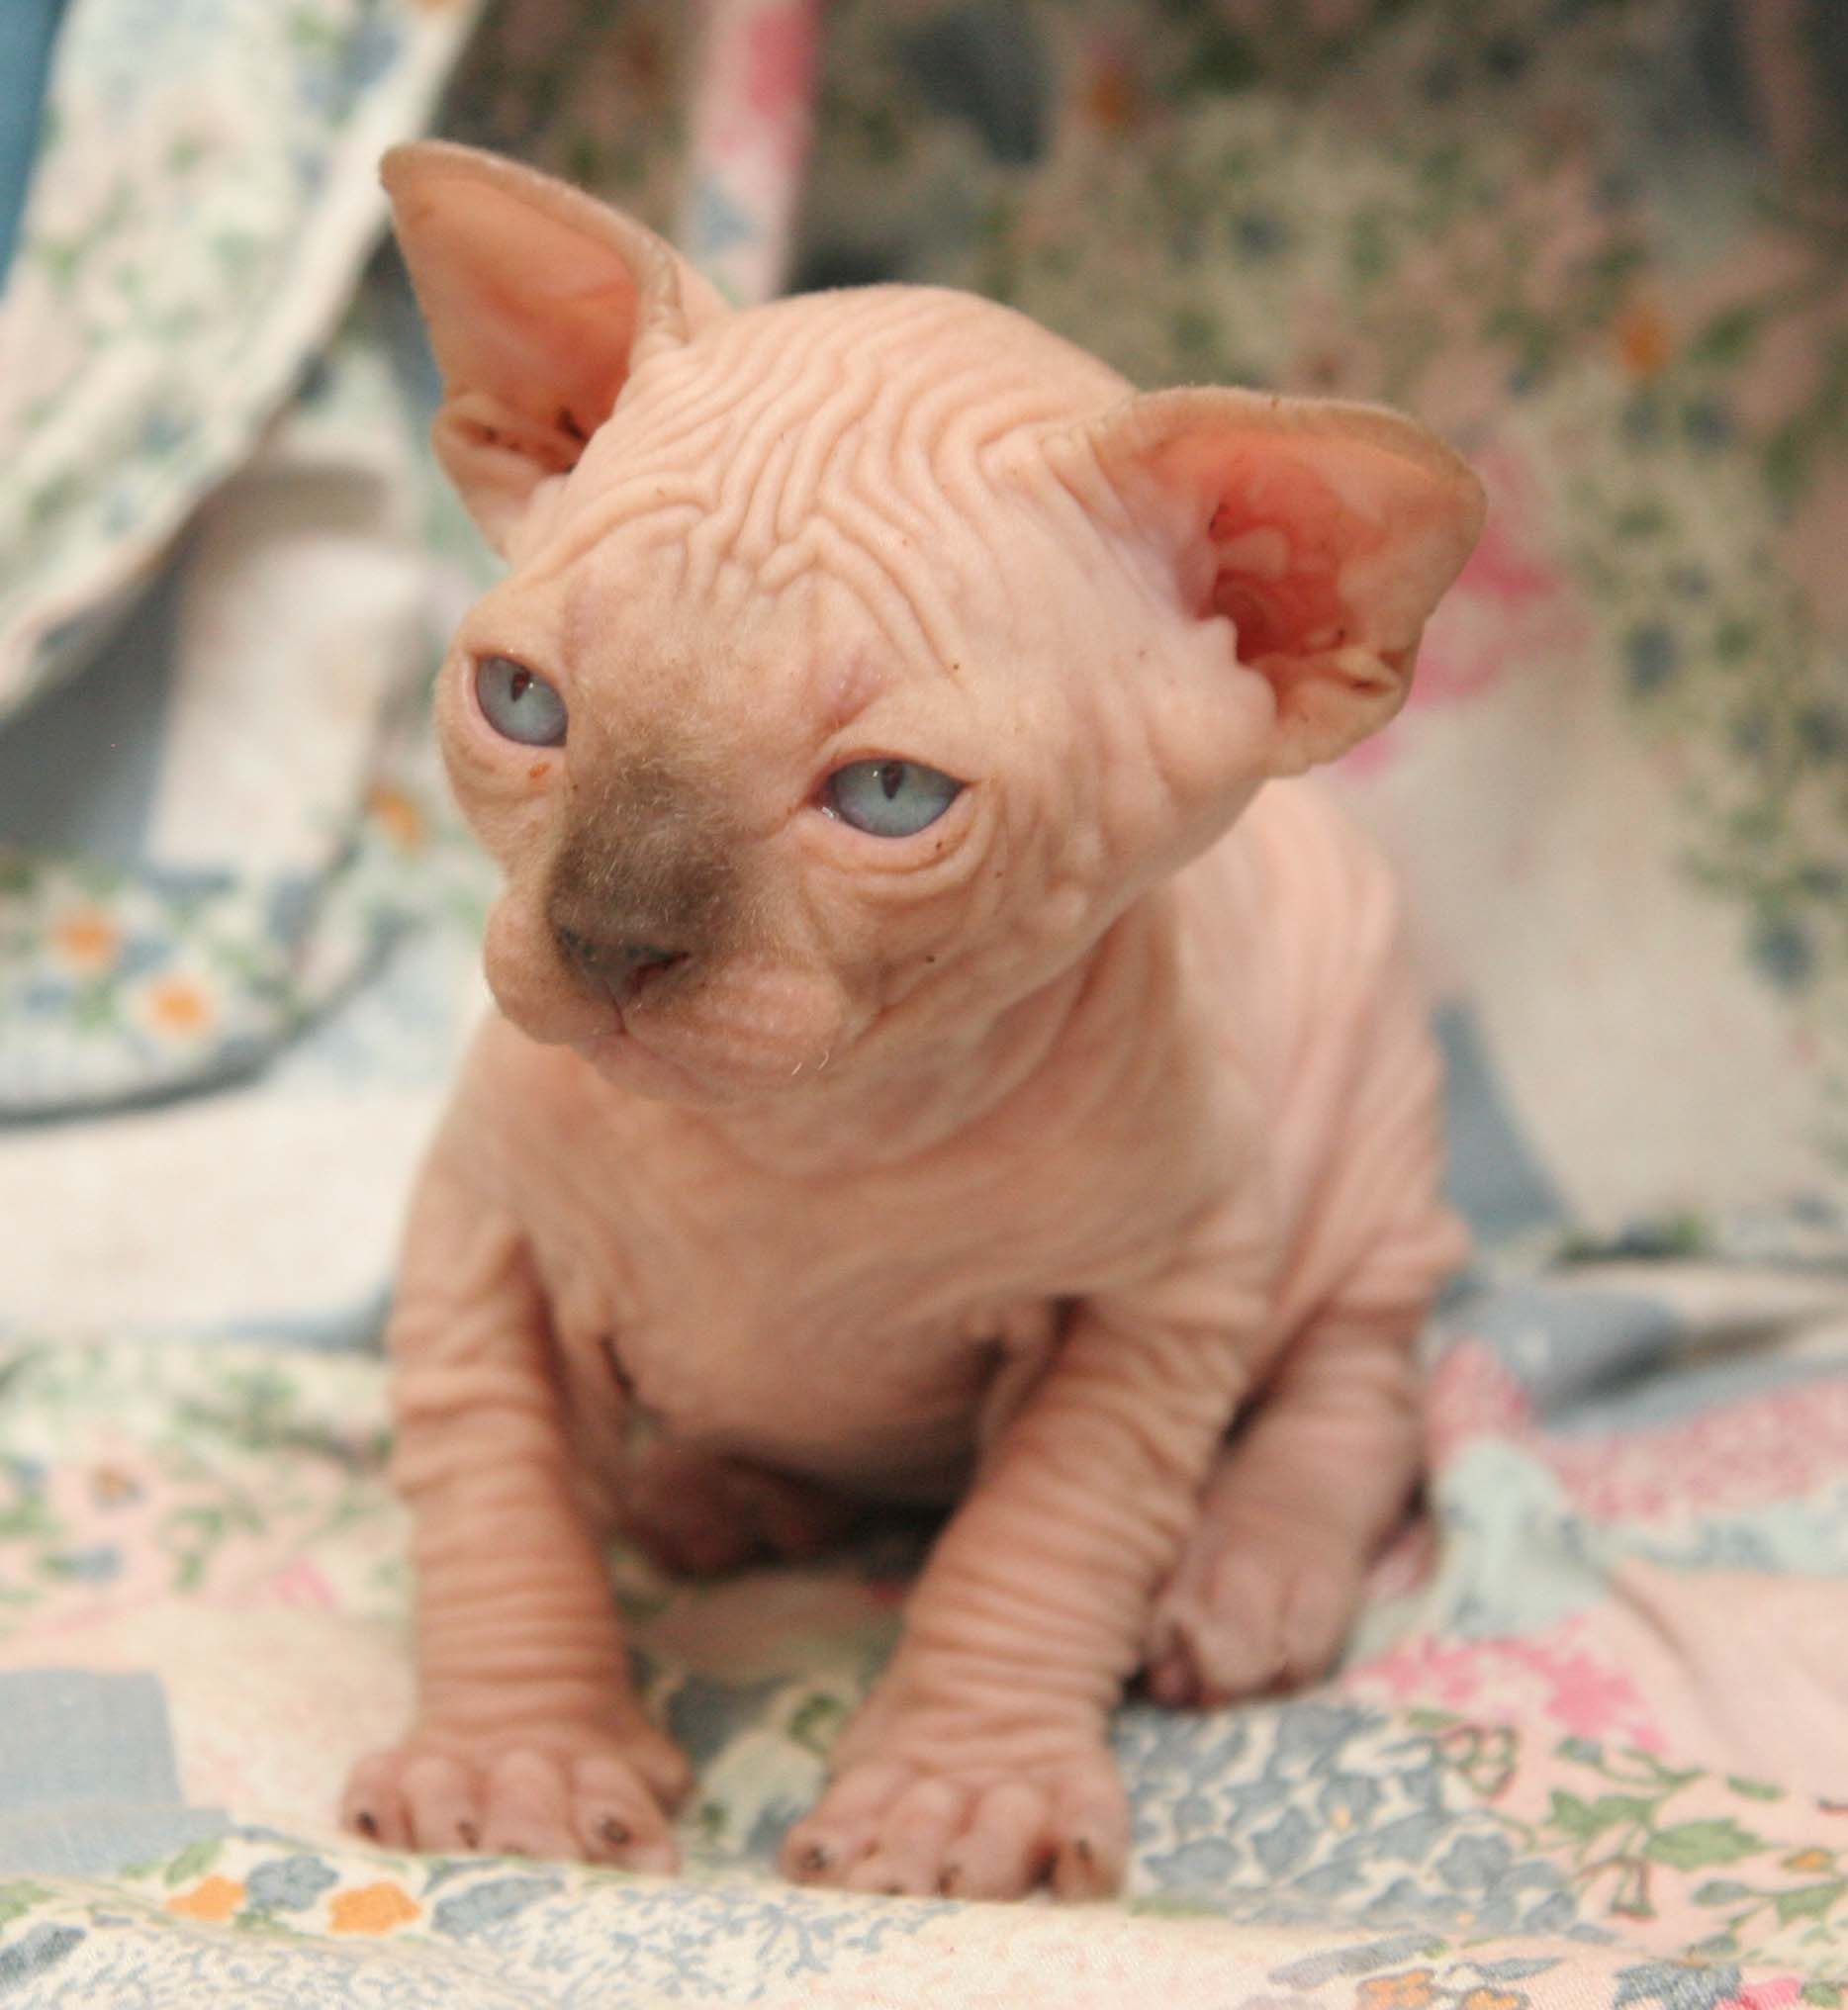 Sphynx Cats For Sale Near Boise In 2020 Hairless Cats For Sale Sphynx Kittens For Sale Baby Hairless Cat